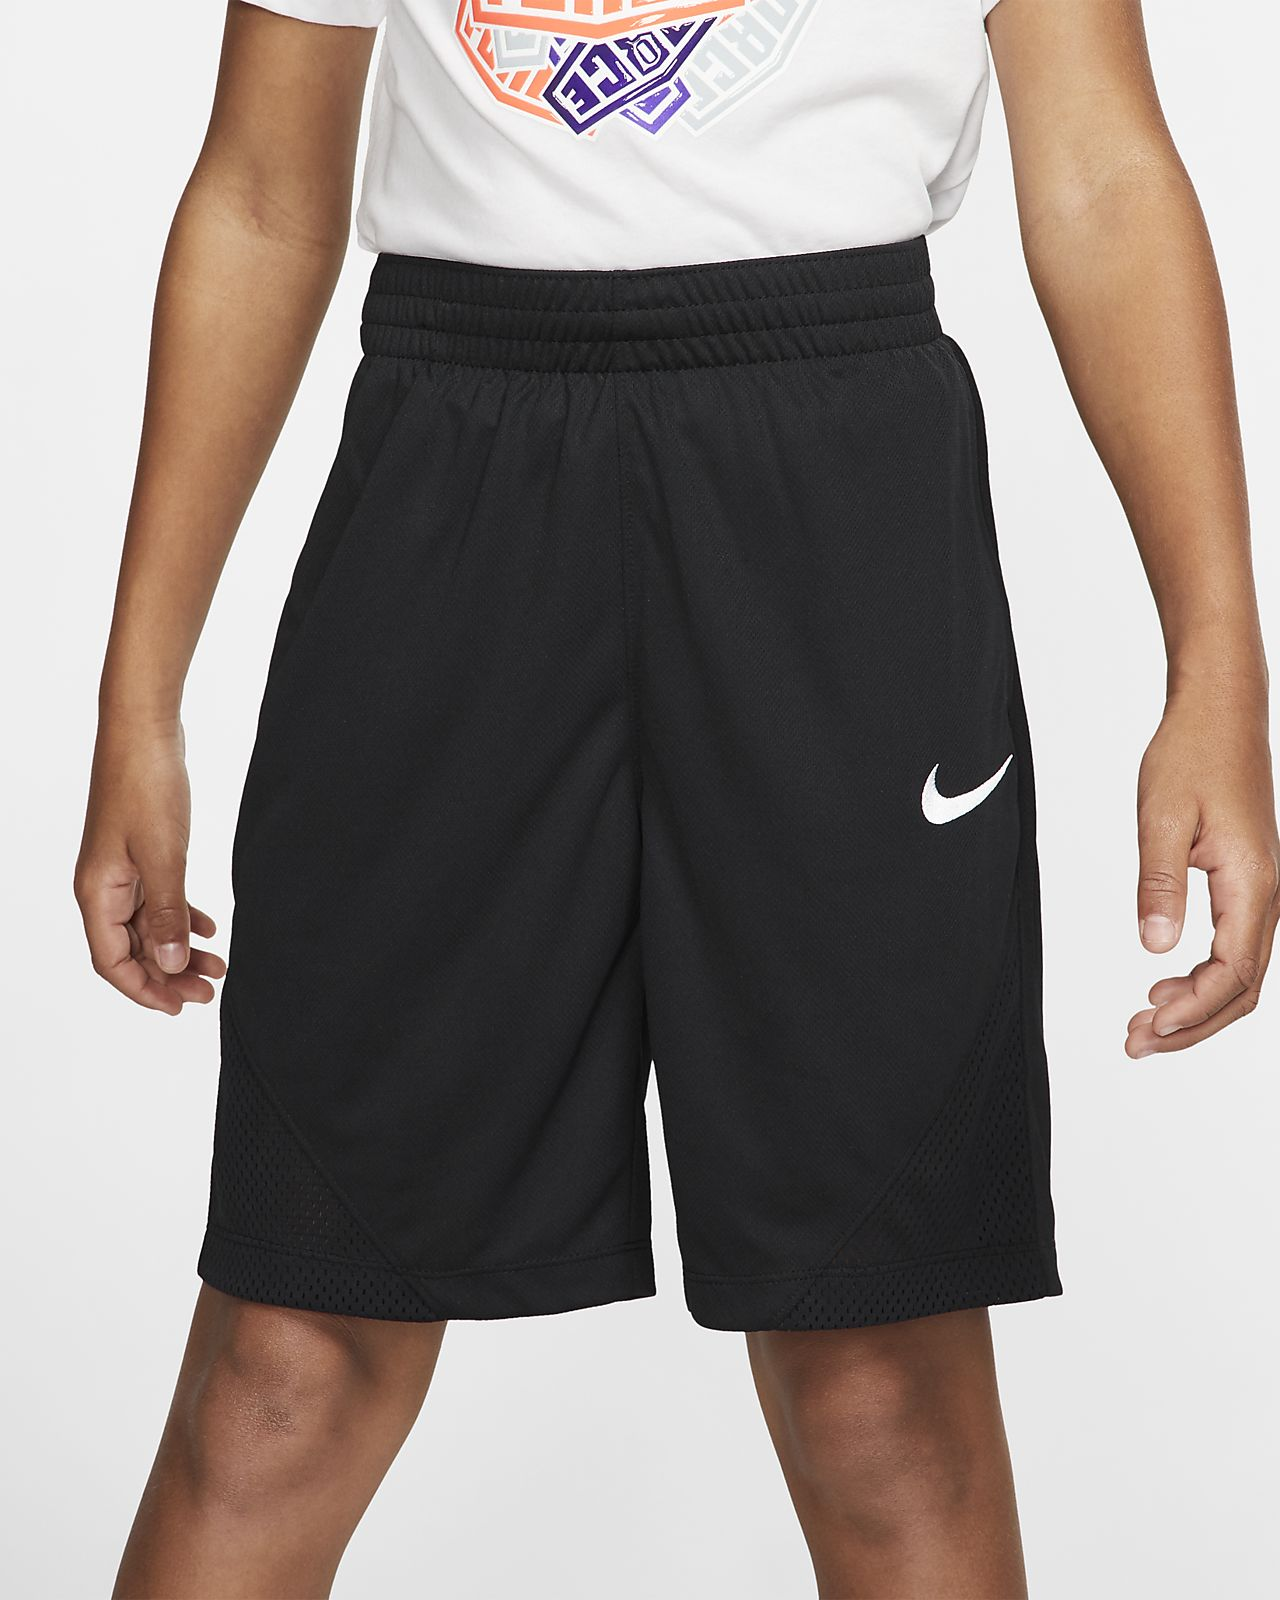 Nike Dry Boys' Basketball Shorts